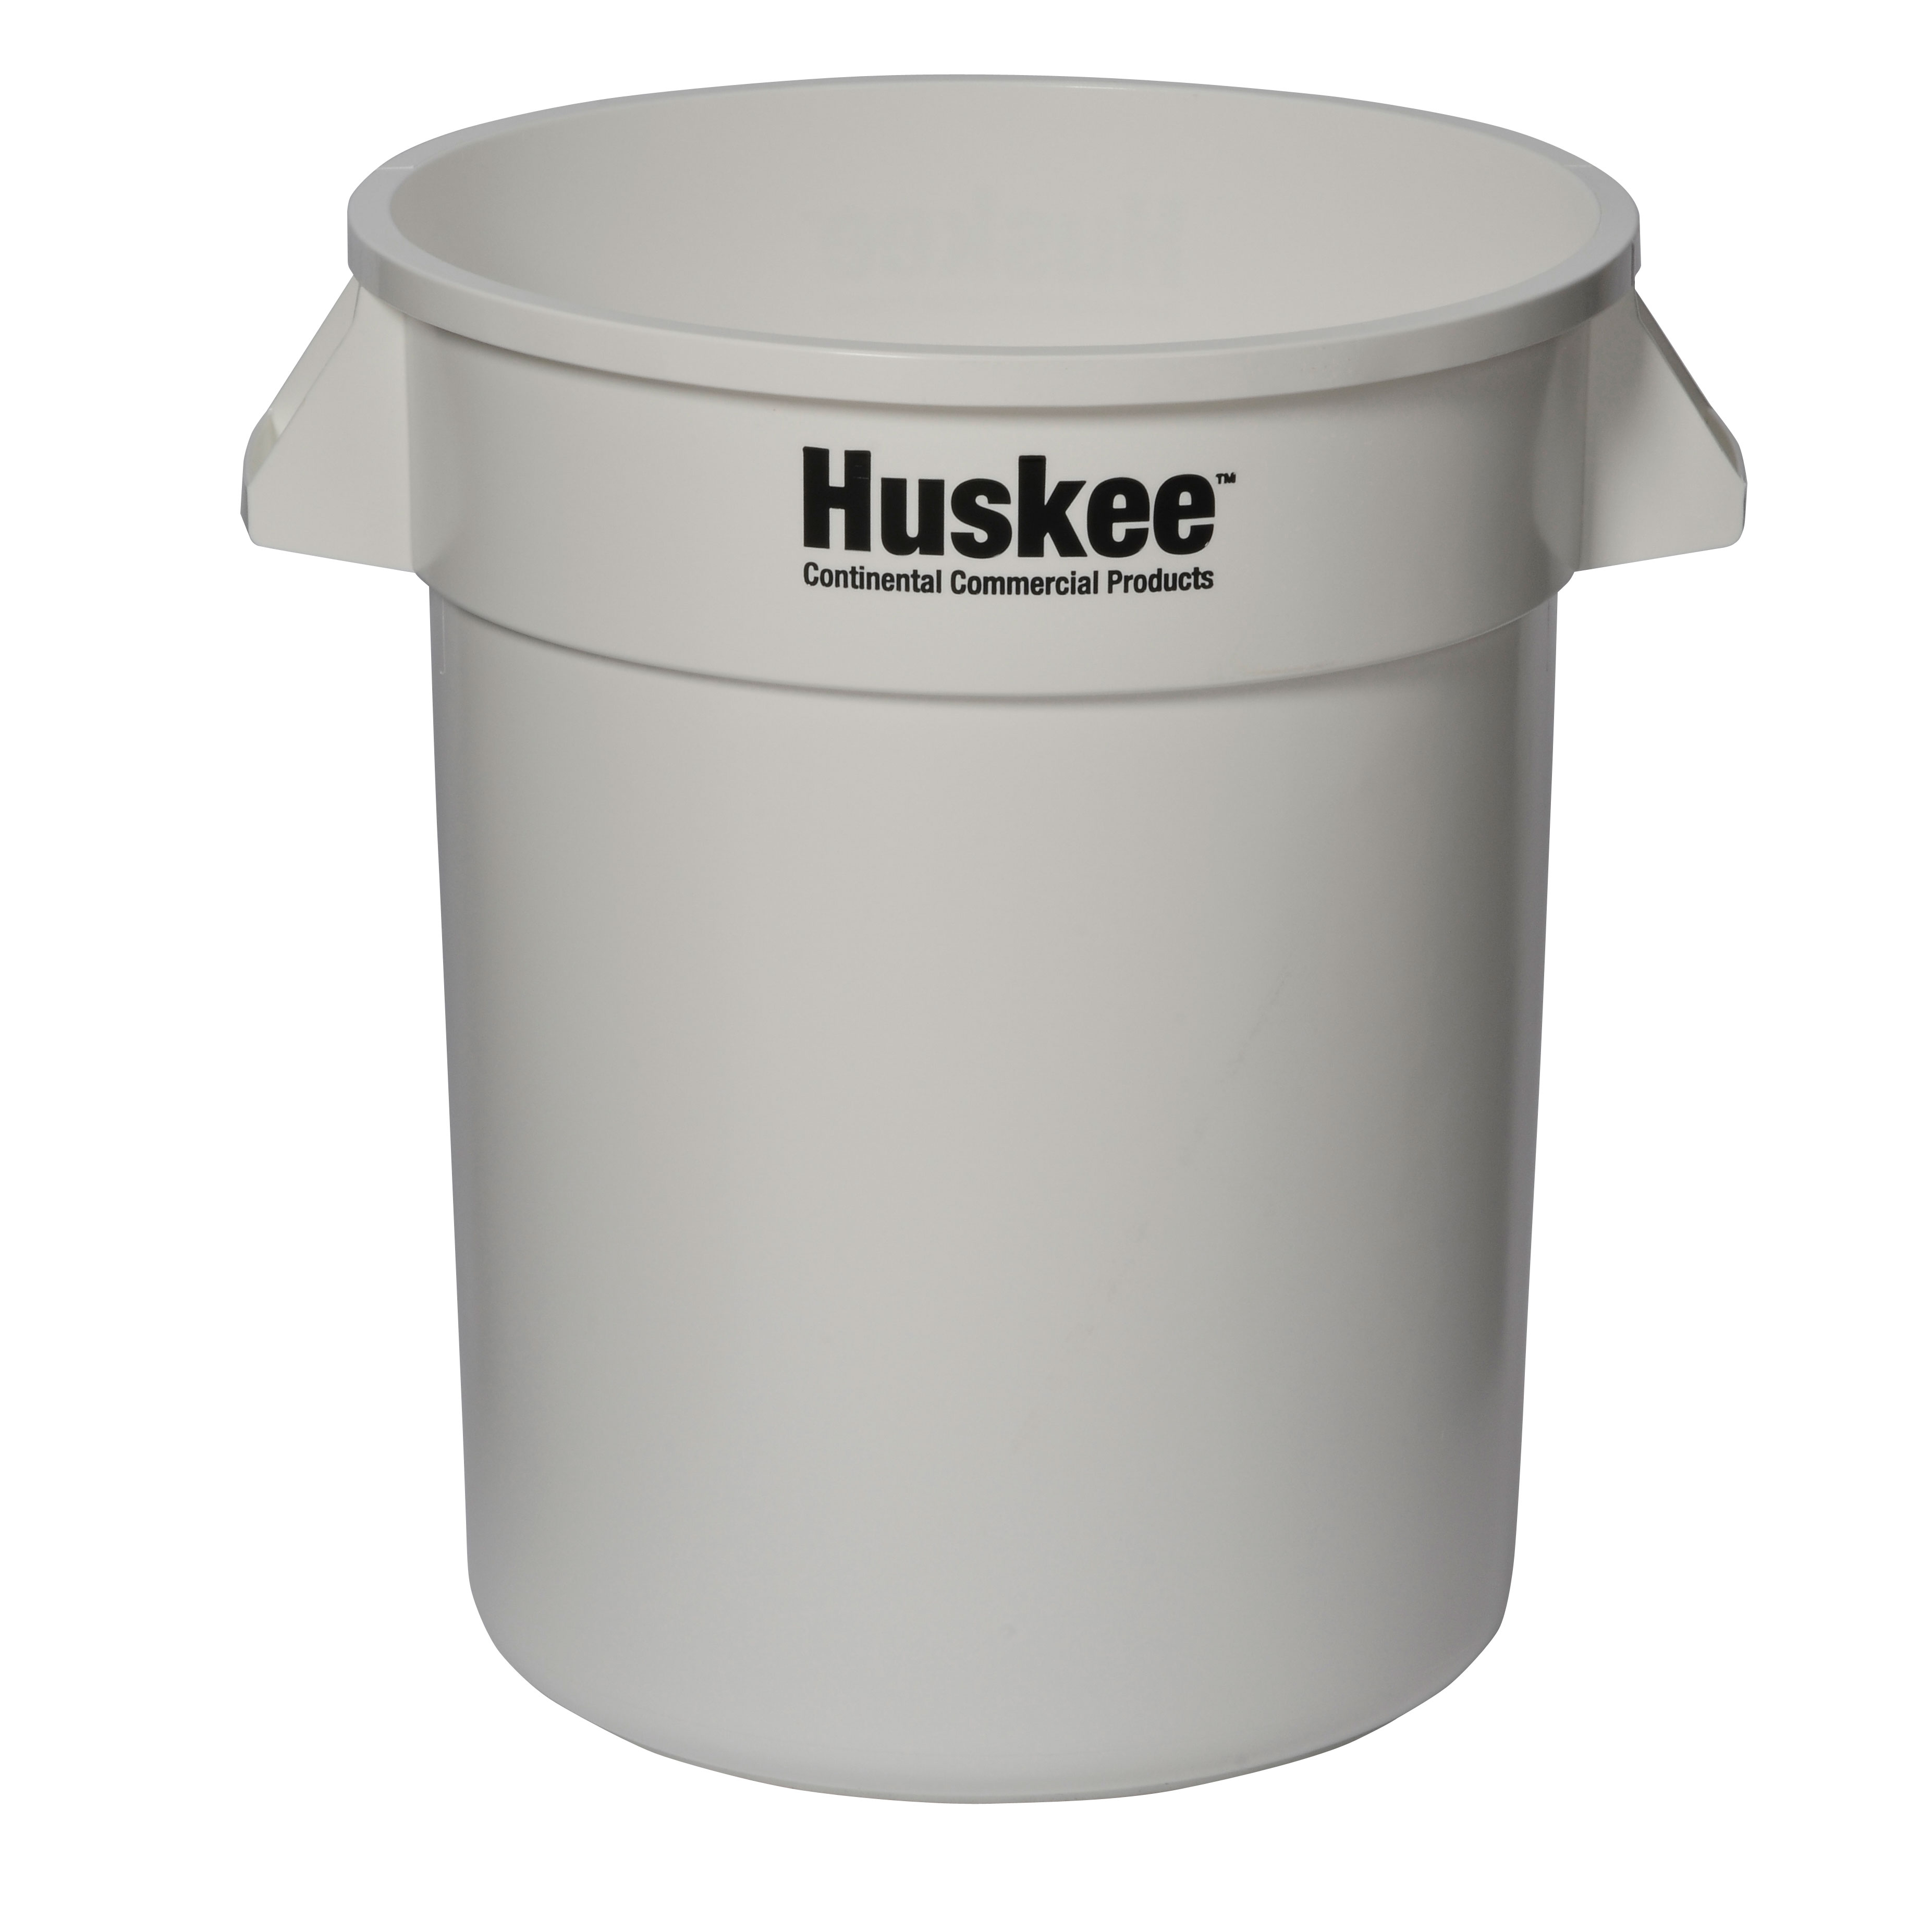 Royal Industries CCP 2000WH trash can / container, commercial